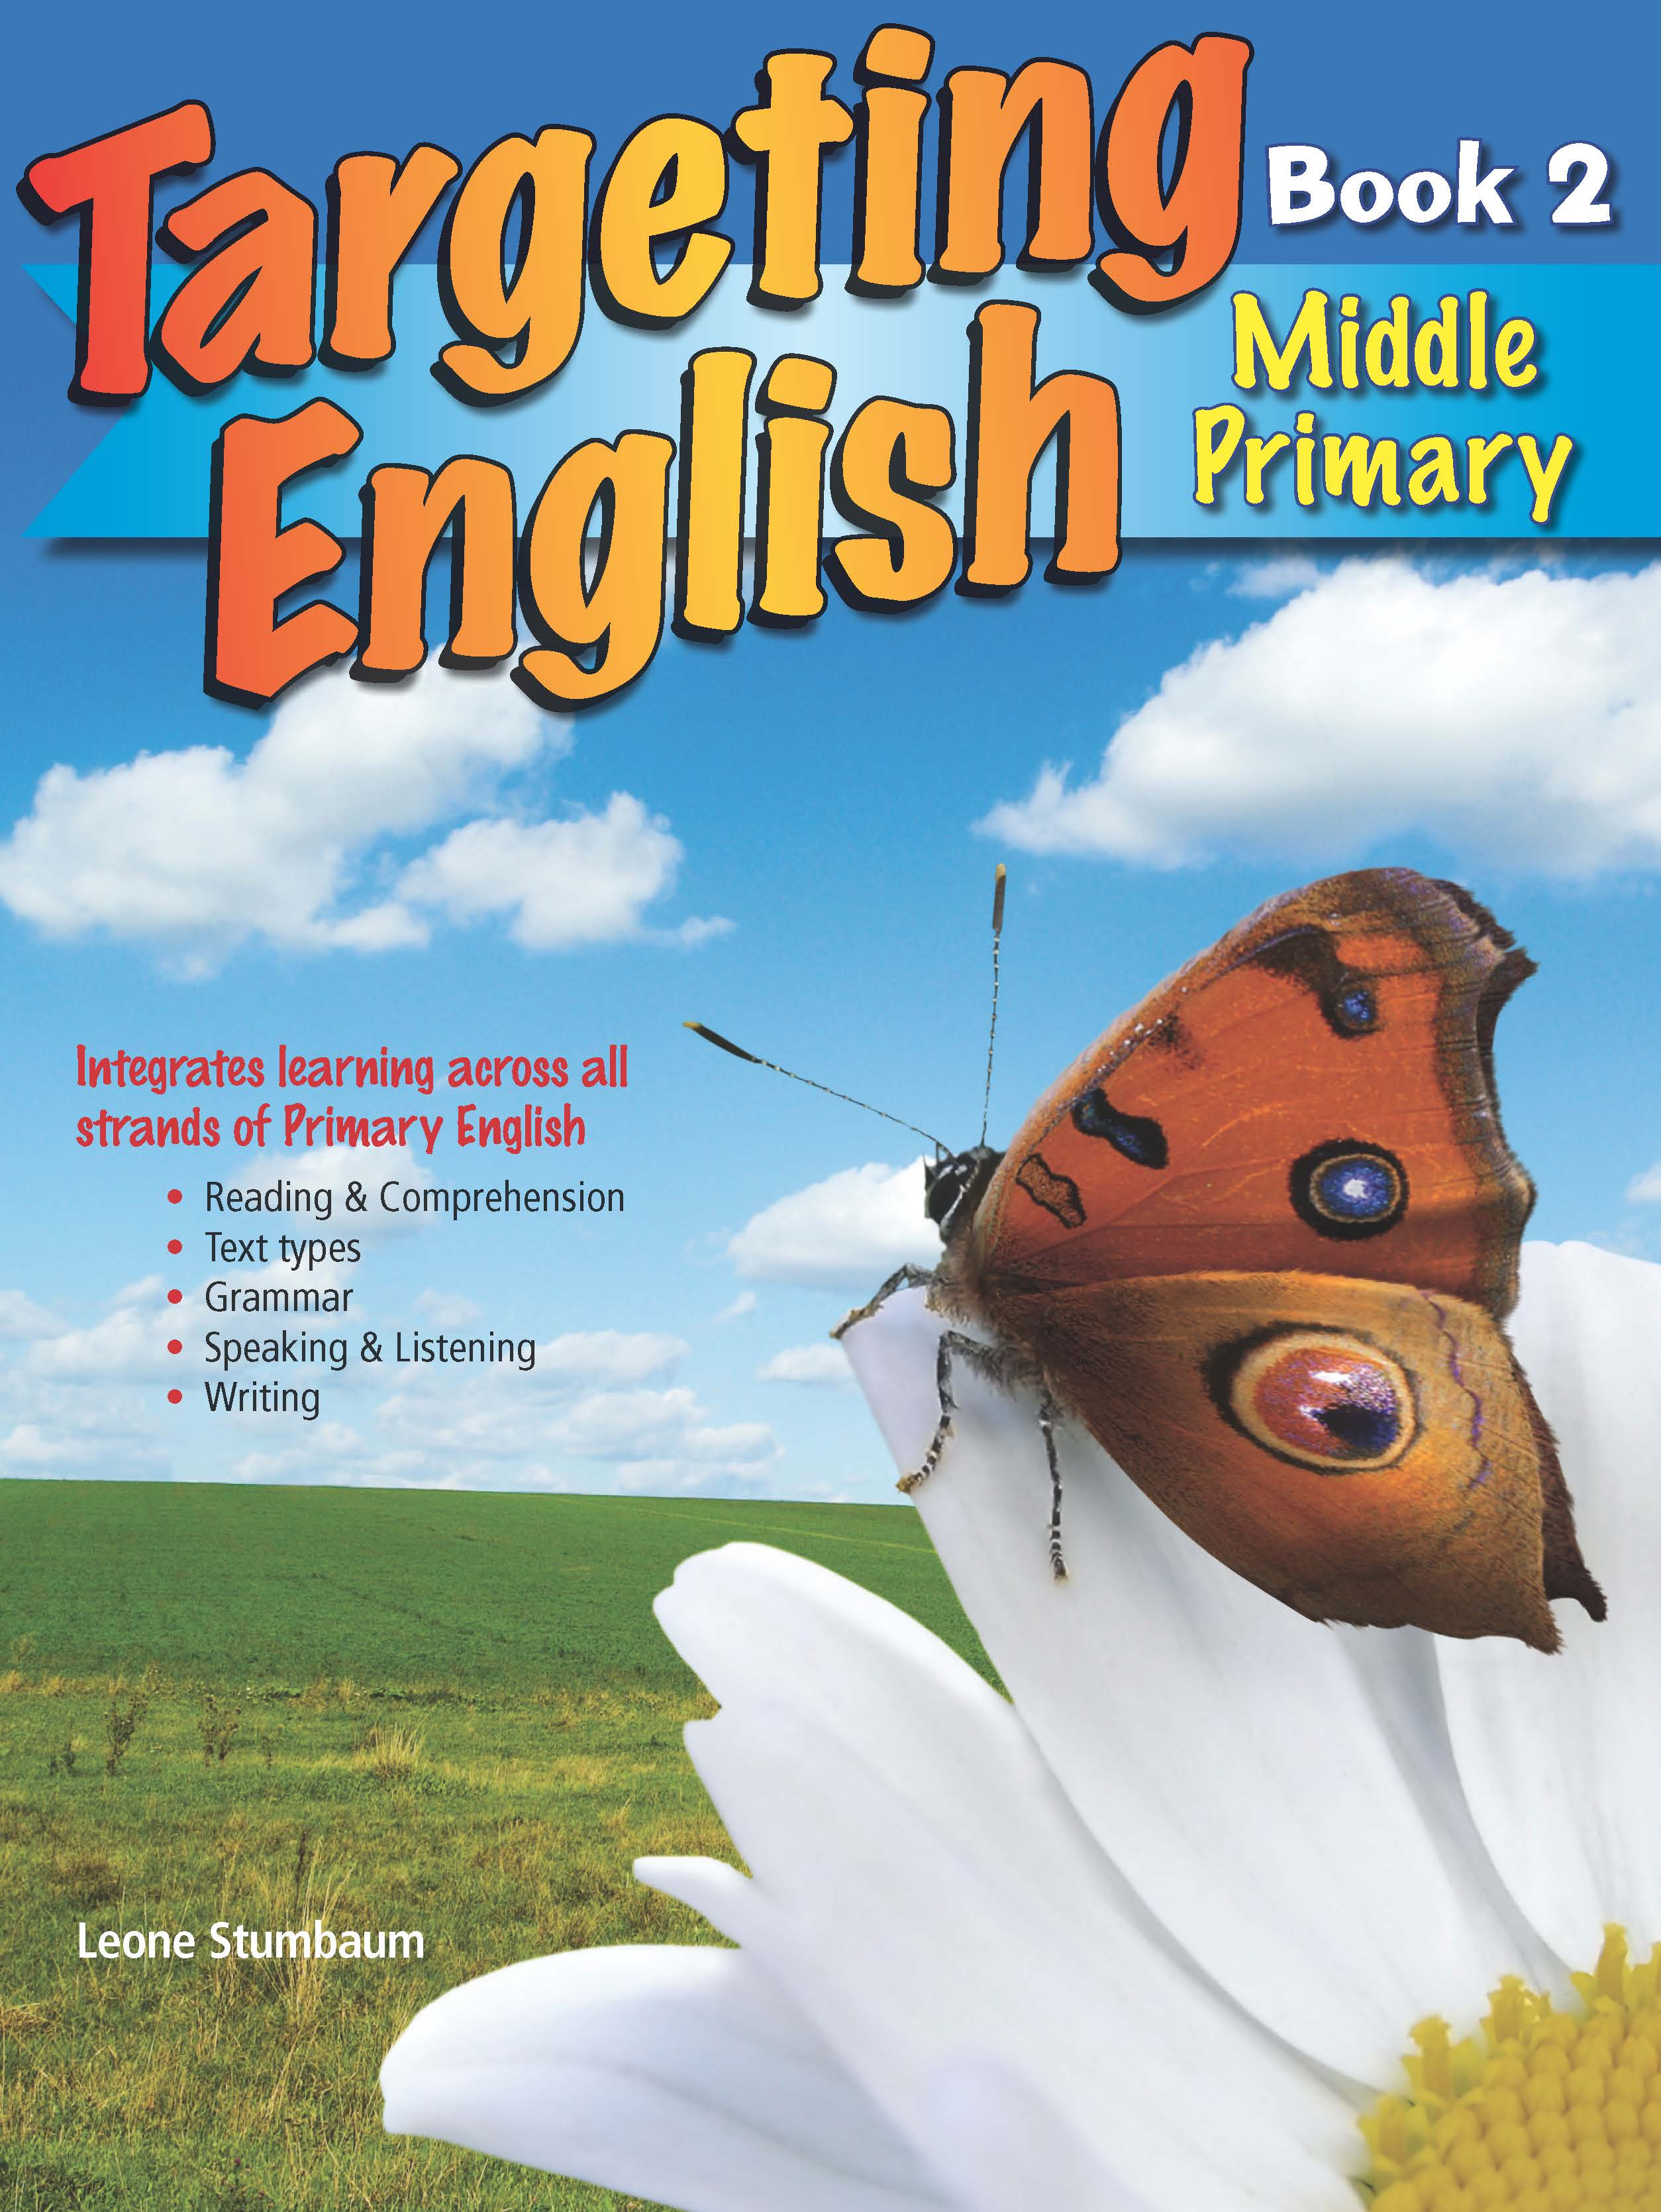 Targeting English Student Workbook Middle Primary Book 2